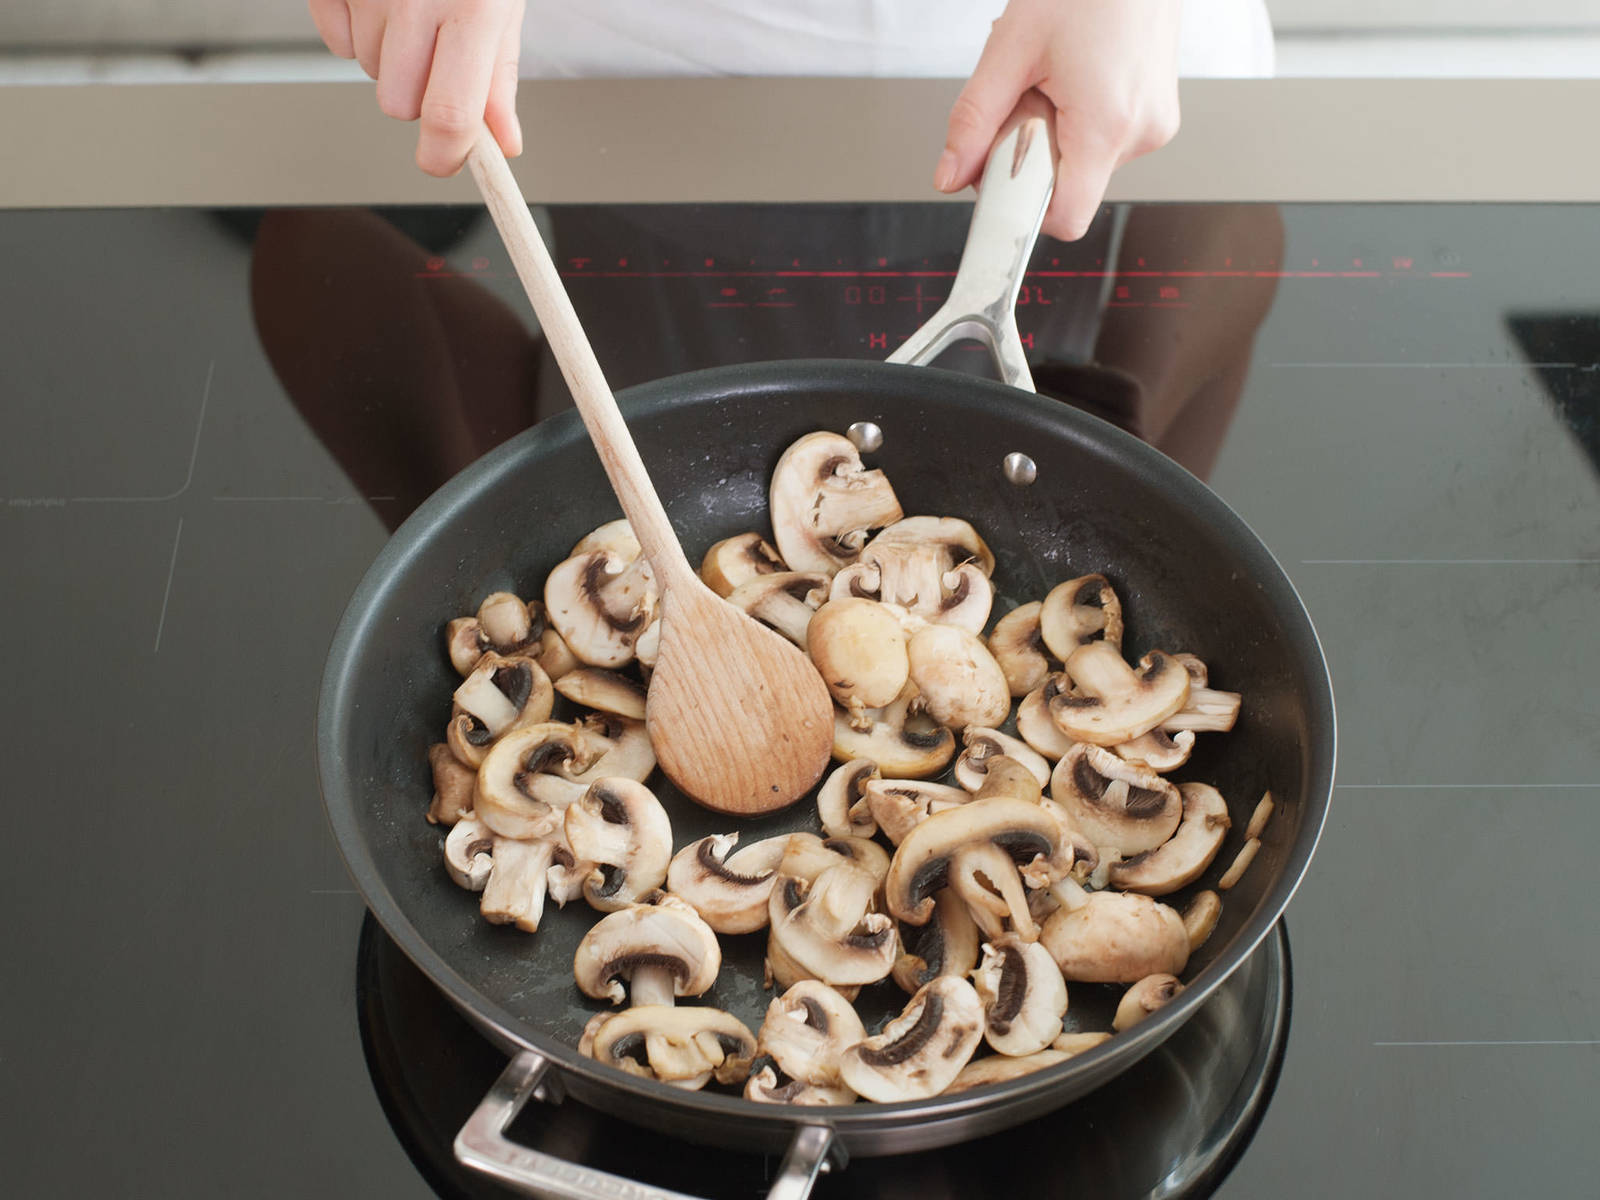 Meanwhile, clean and slice mushrooms, then sauté them in butter until soft and golden brown. Add to slow cooker about 1 hour before serving.